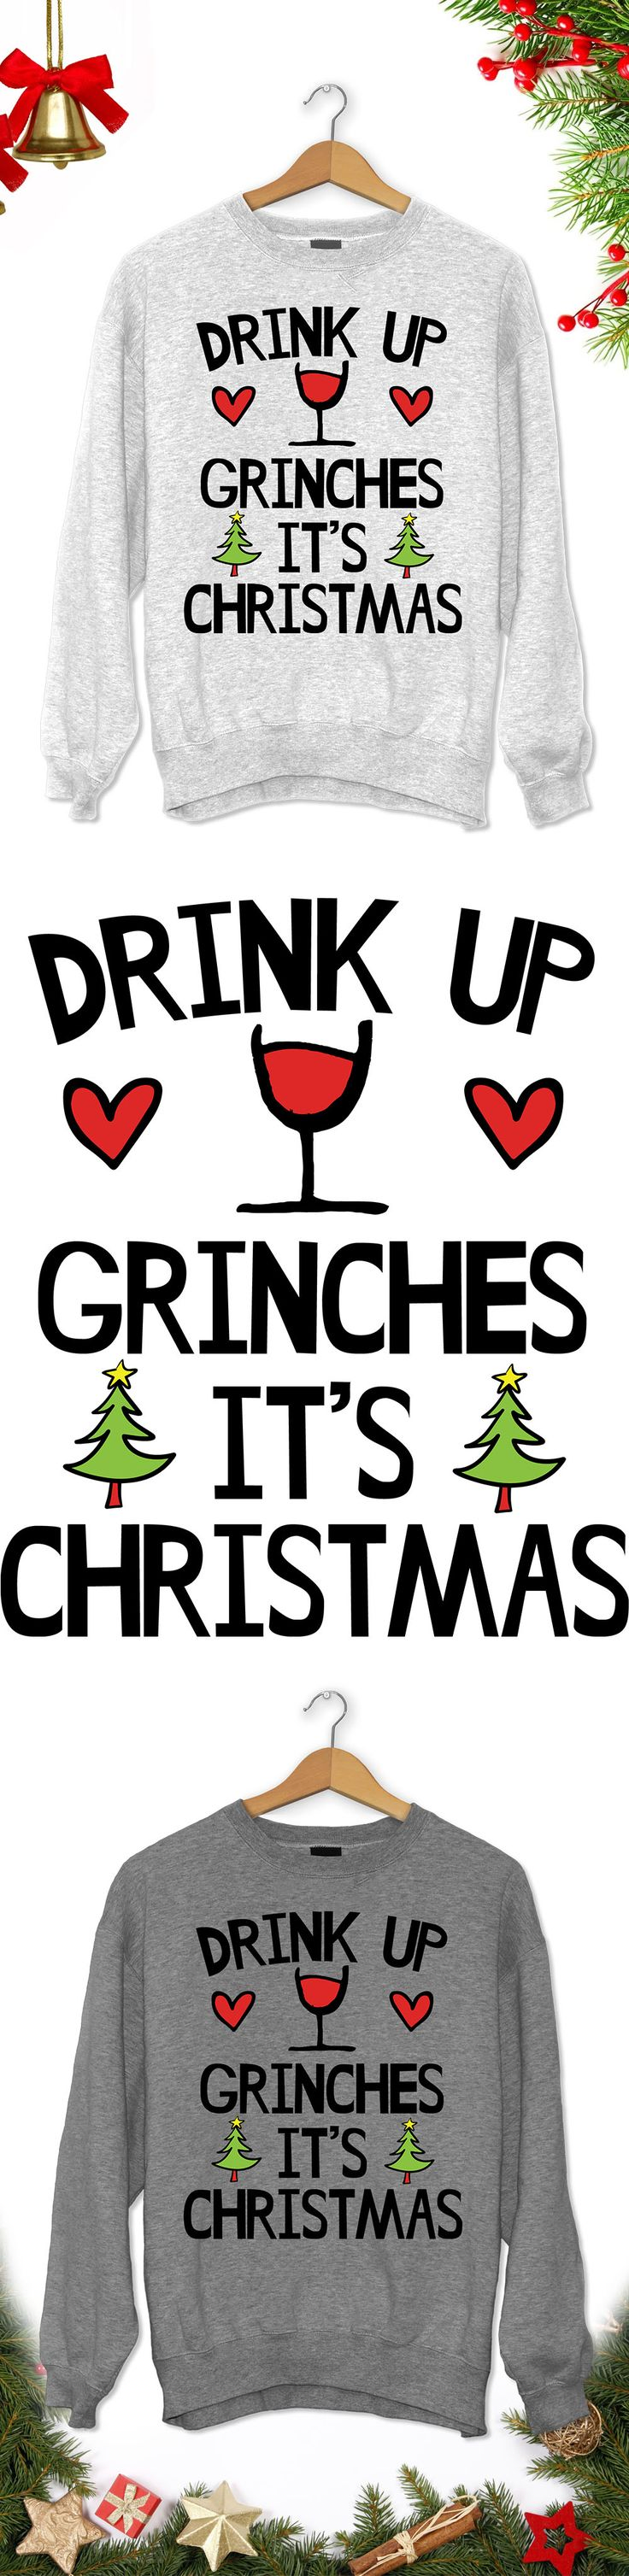 Drink Up Grinches It's Christmas - Limited edition. Order 2 or more for friends/family & save on shipping! Makes a great gift!